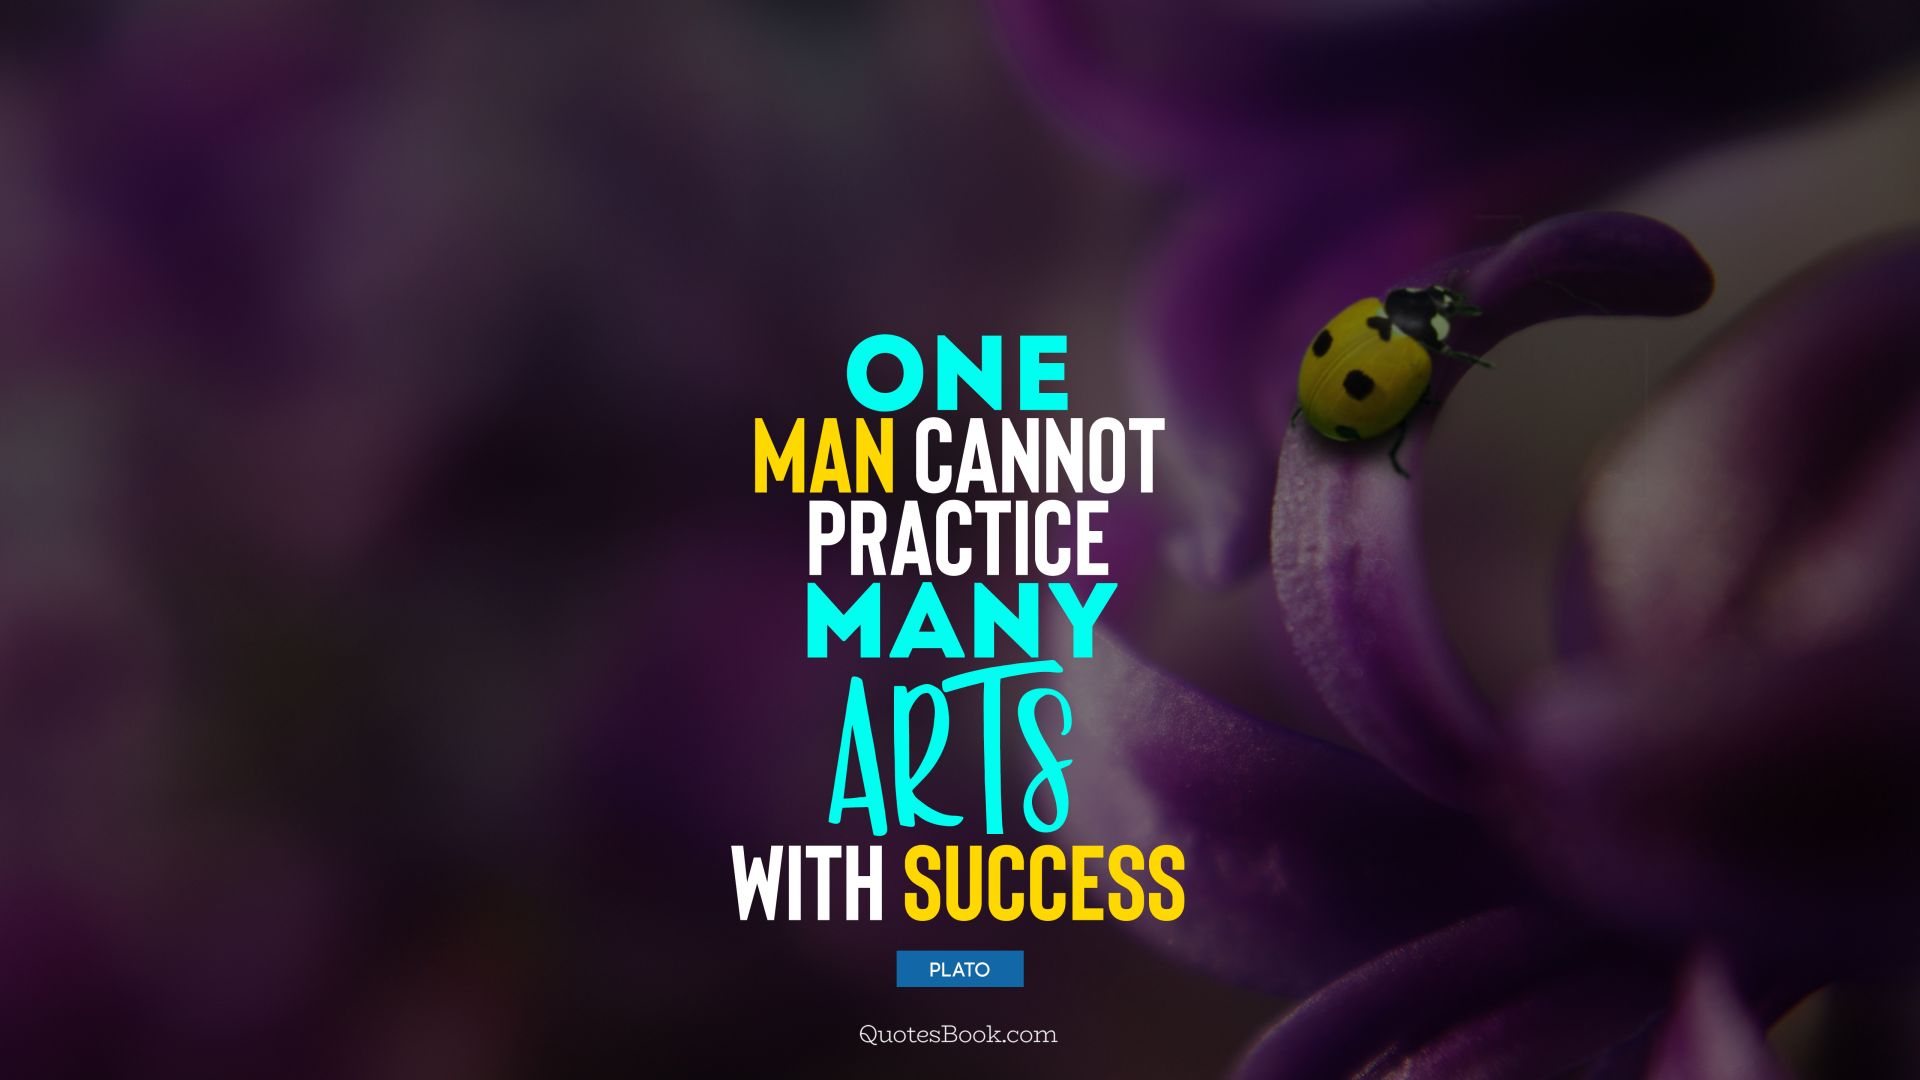 One man cannot practice many arts with success. - Quote by Plato